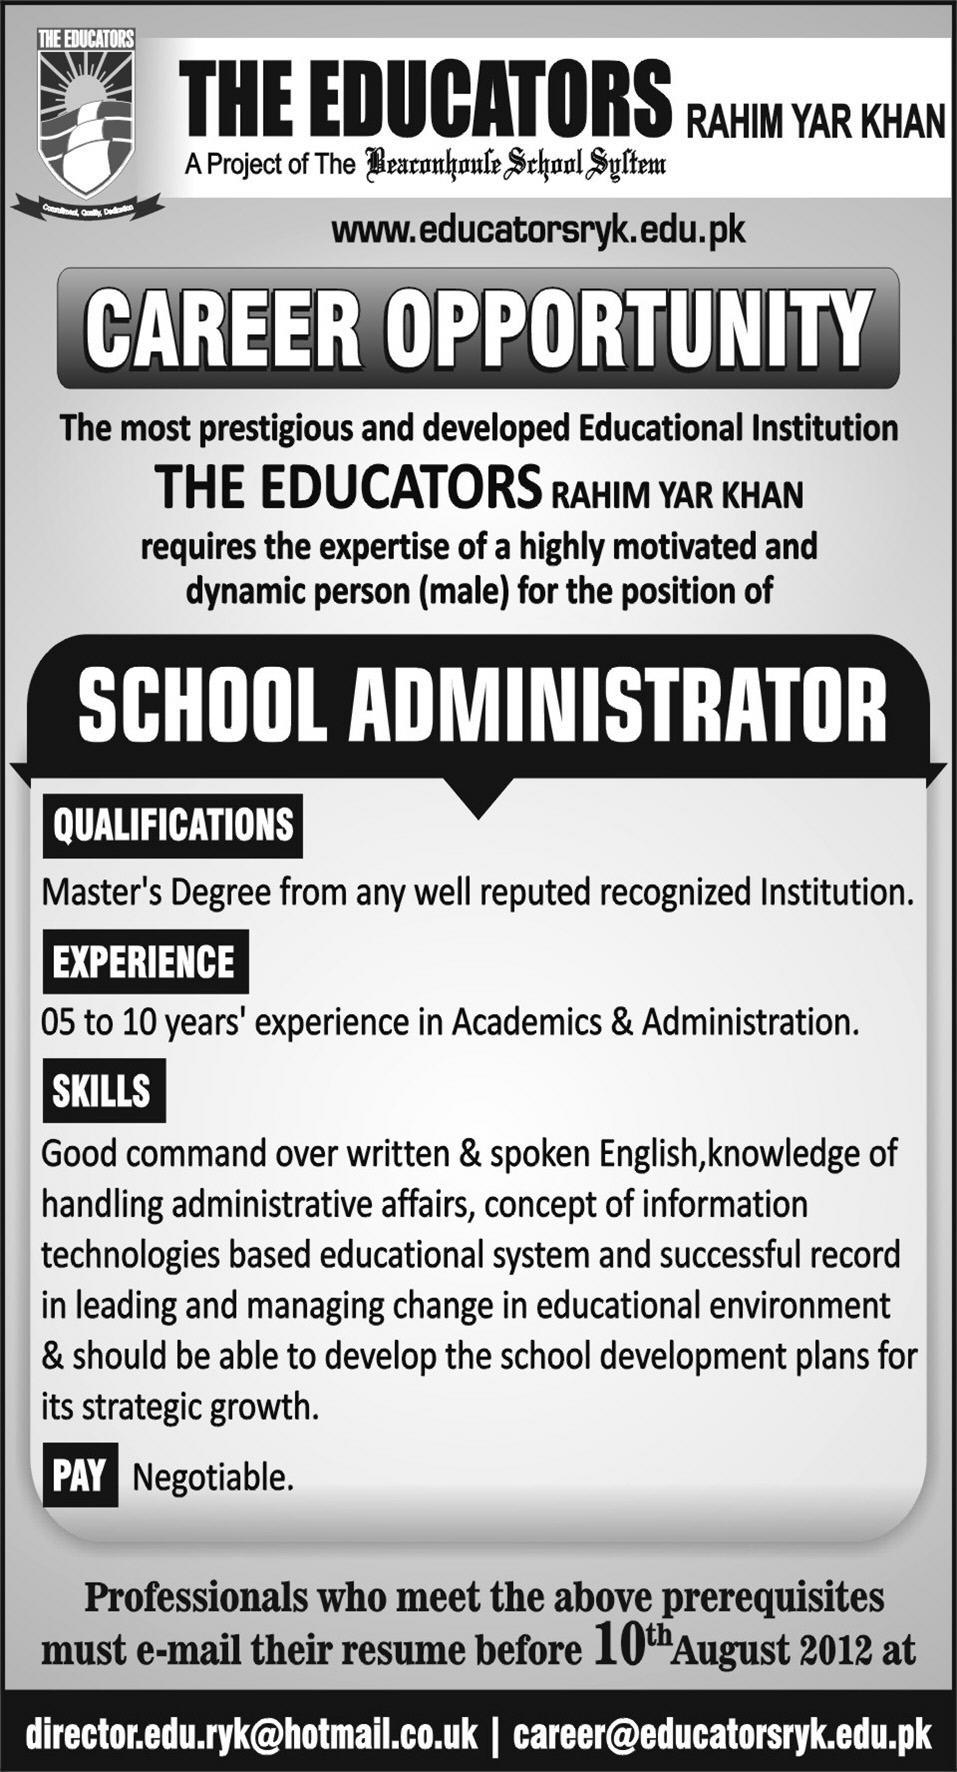 jobs in the educators Jobs in the Educators Rahim Yar Khan   Express Newspaper Jobs